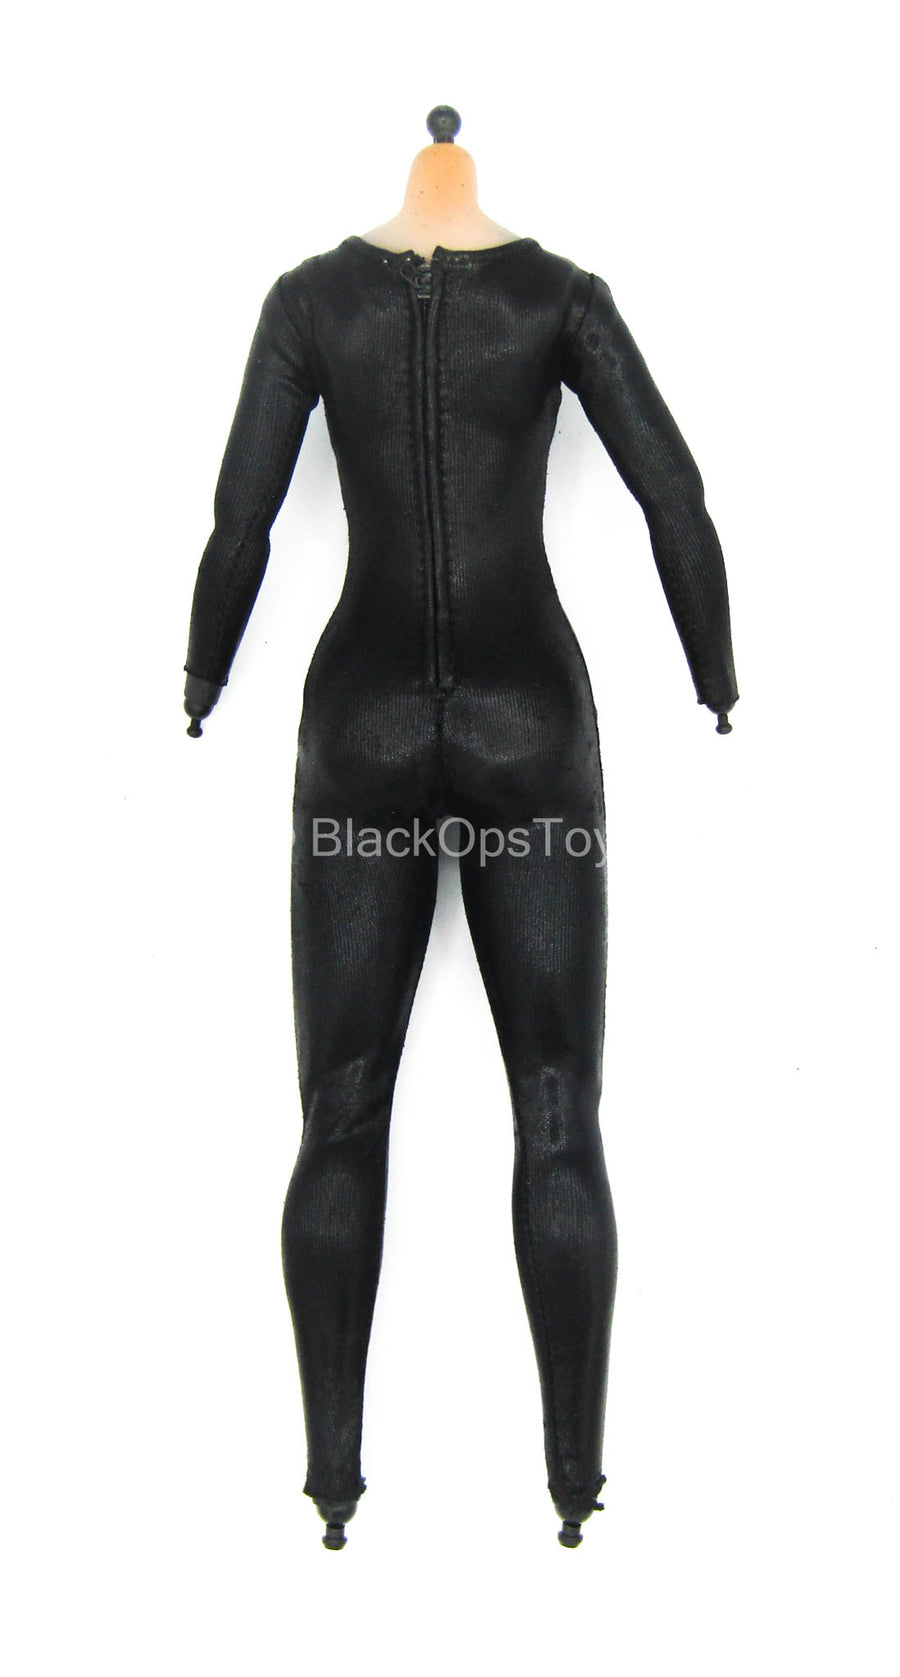 GI JOE - Baroness - Female Base Body w/Body Suit